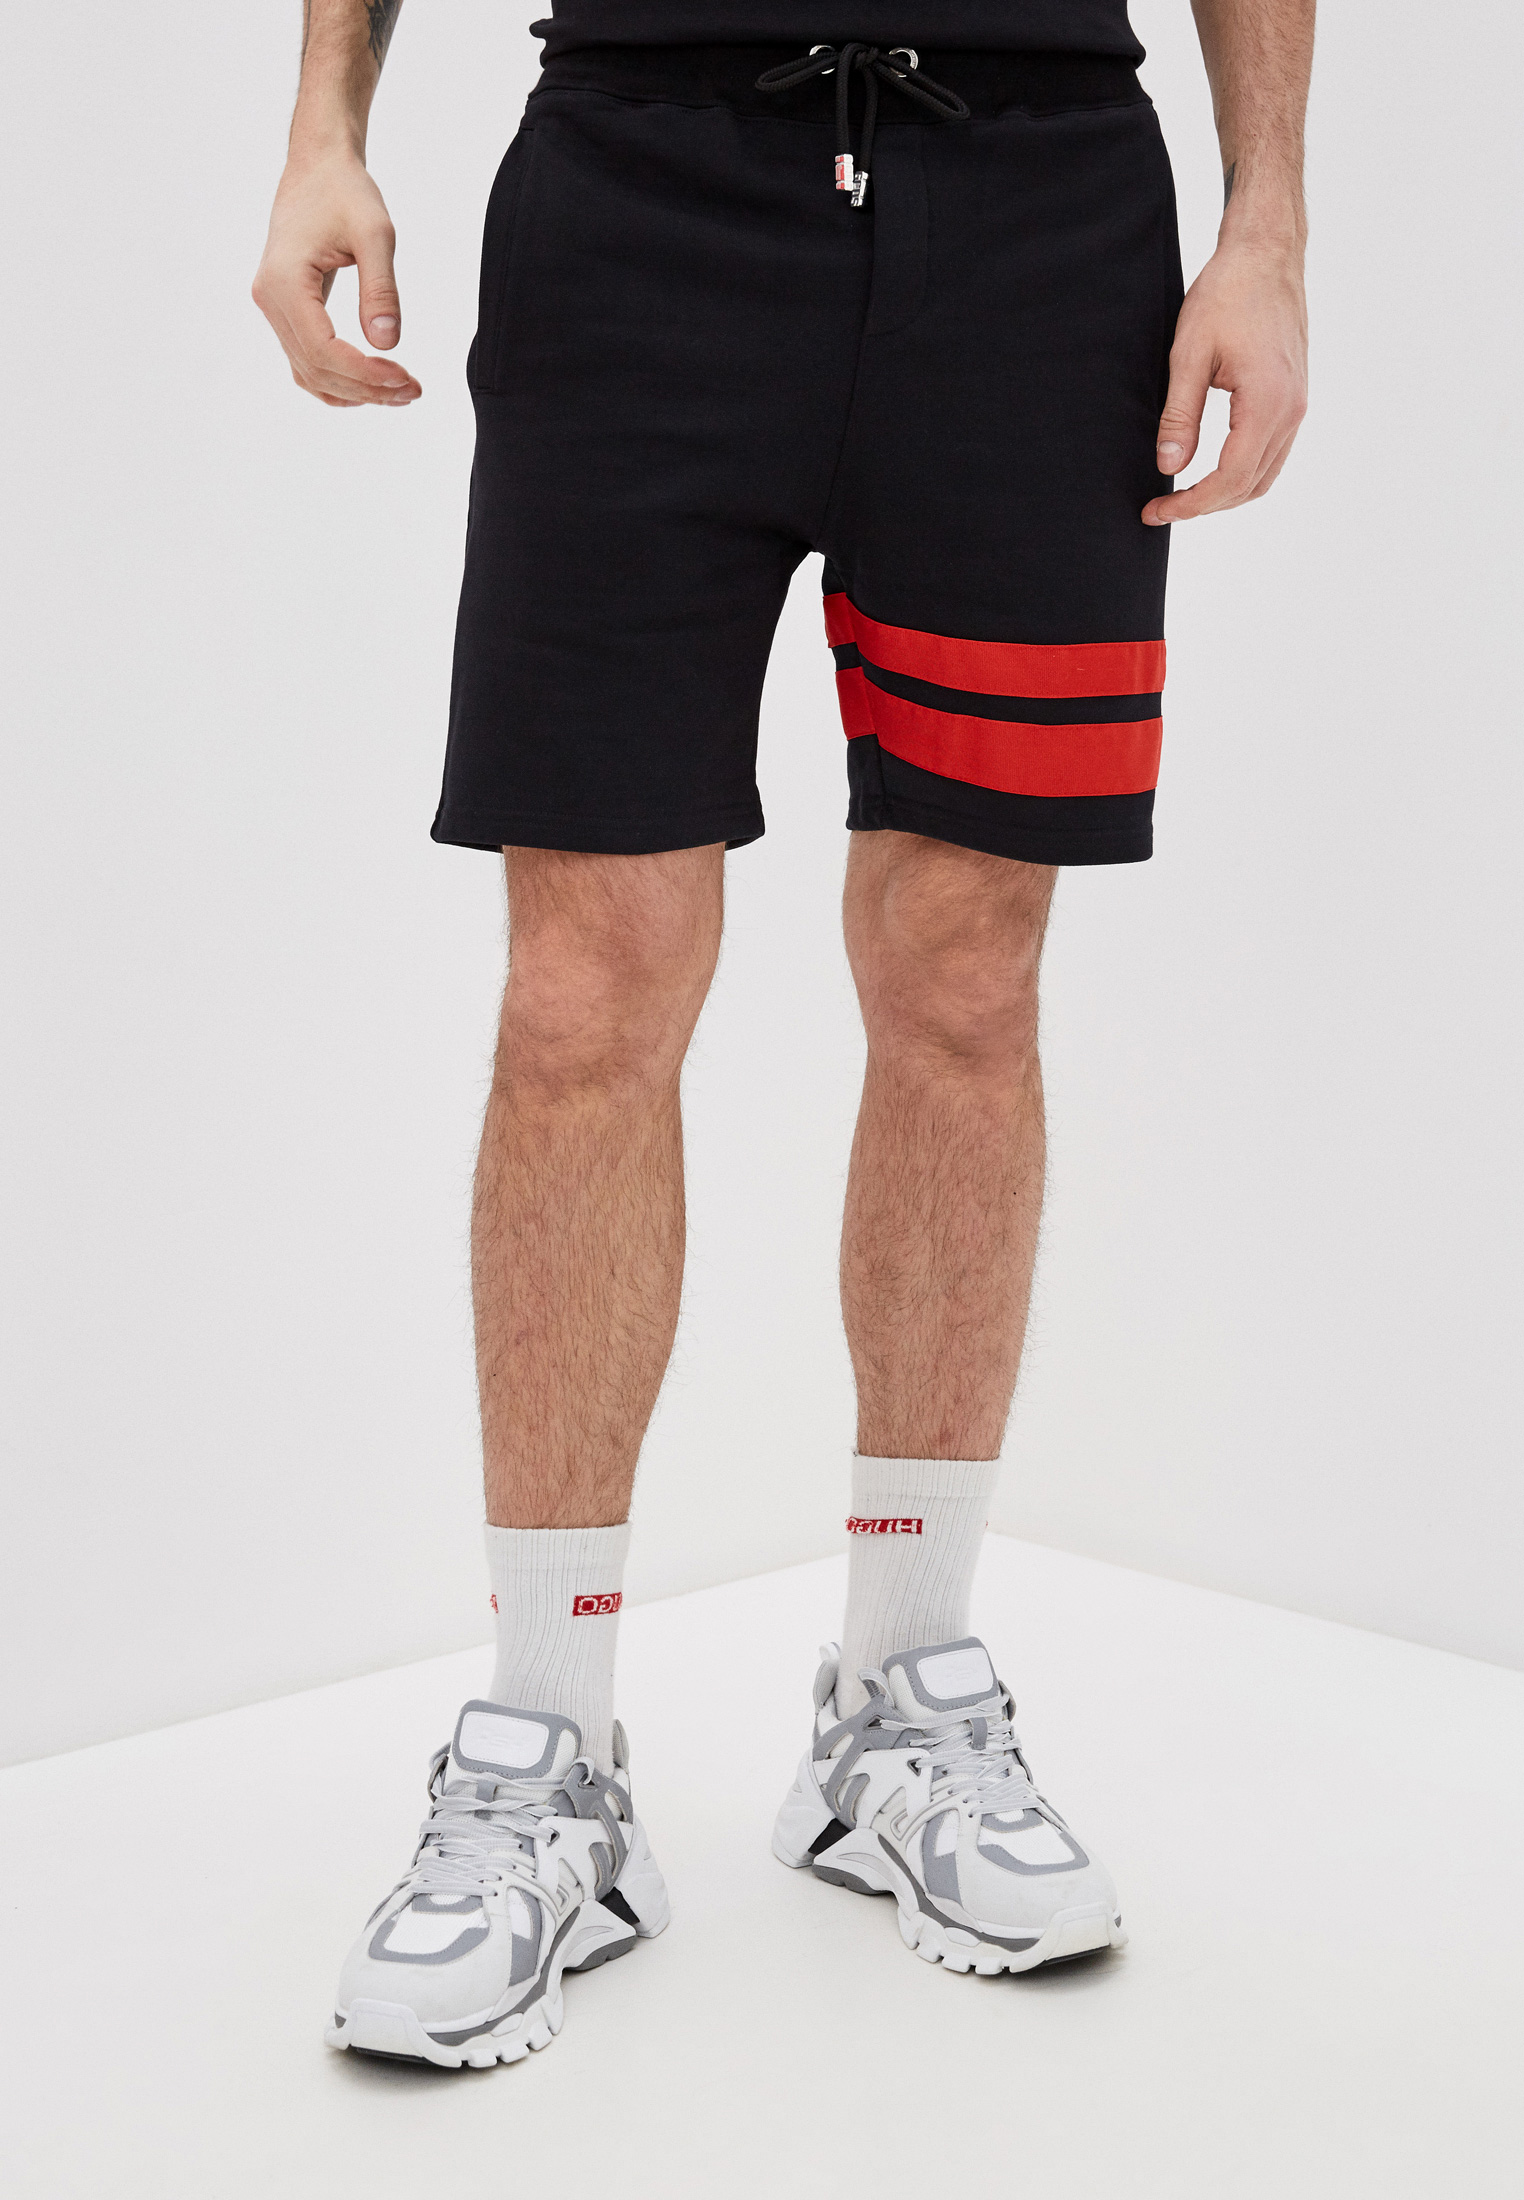 Qinf New Cartoon Fashion State Arms Of Lovely Summer Beach Pants Casual Shorts For Man